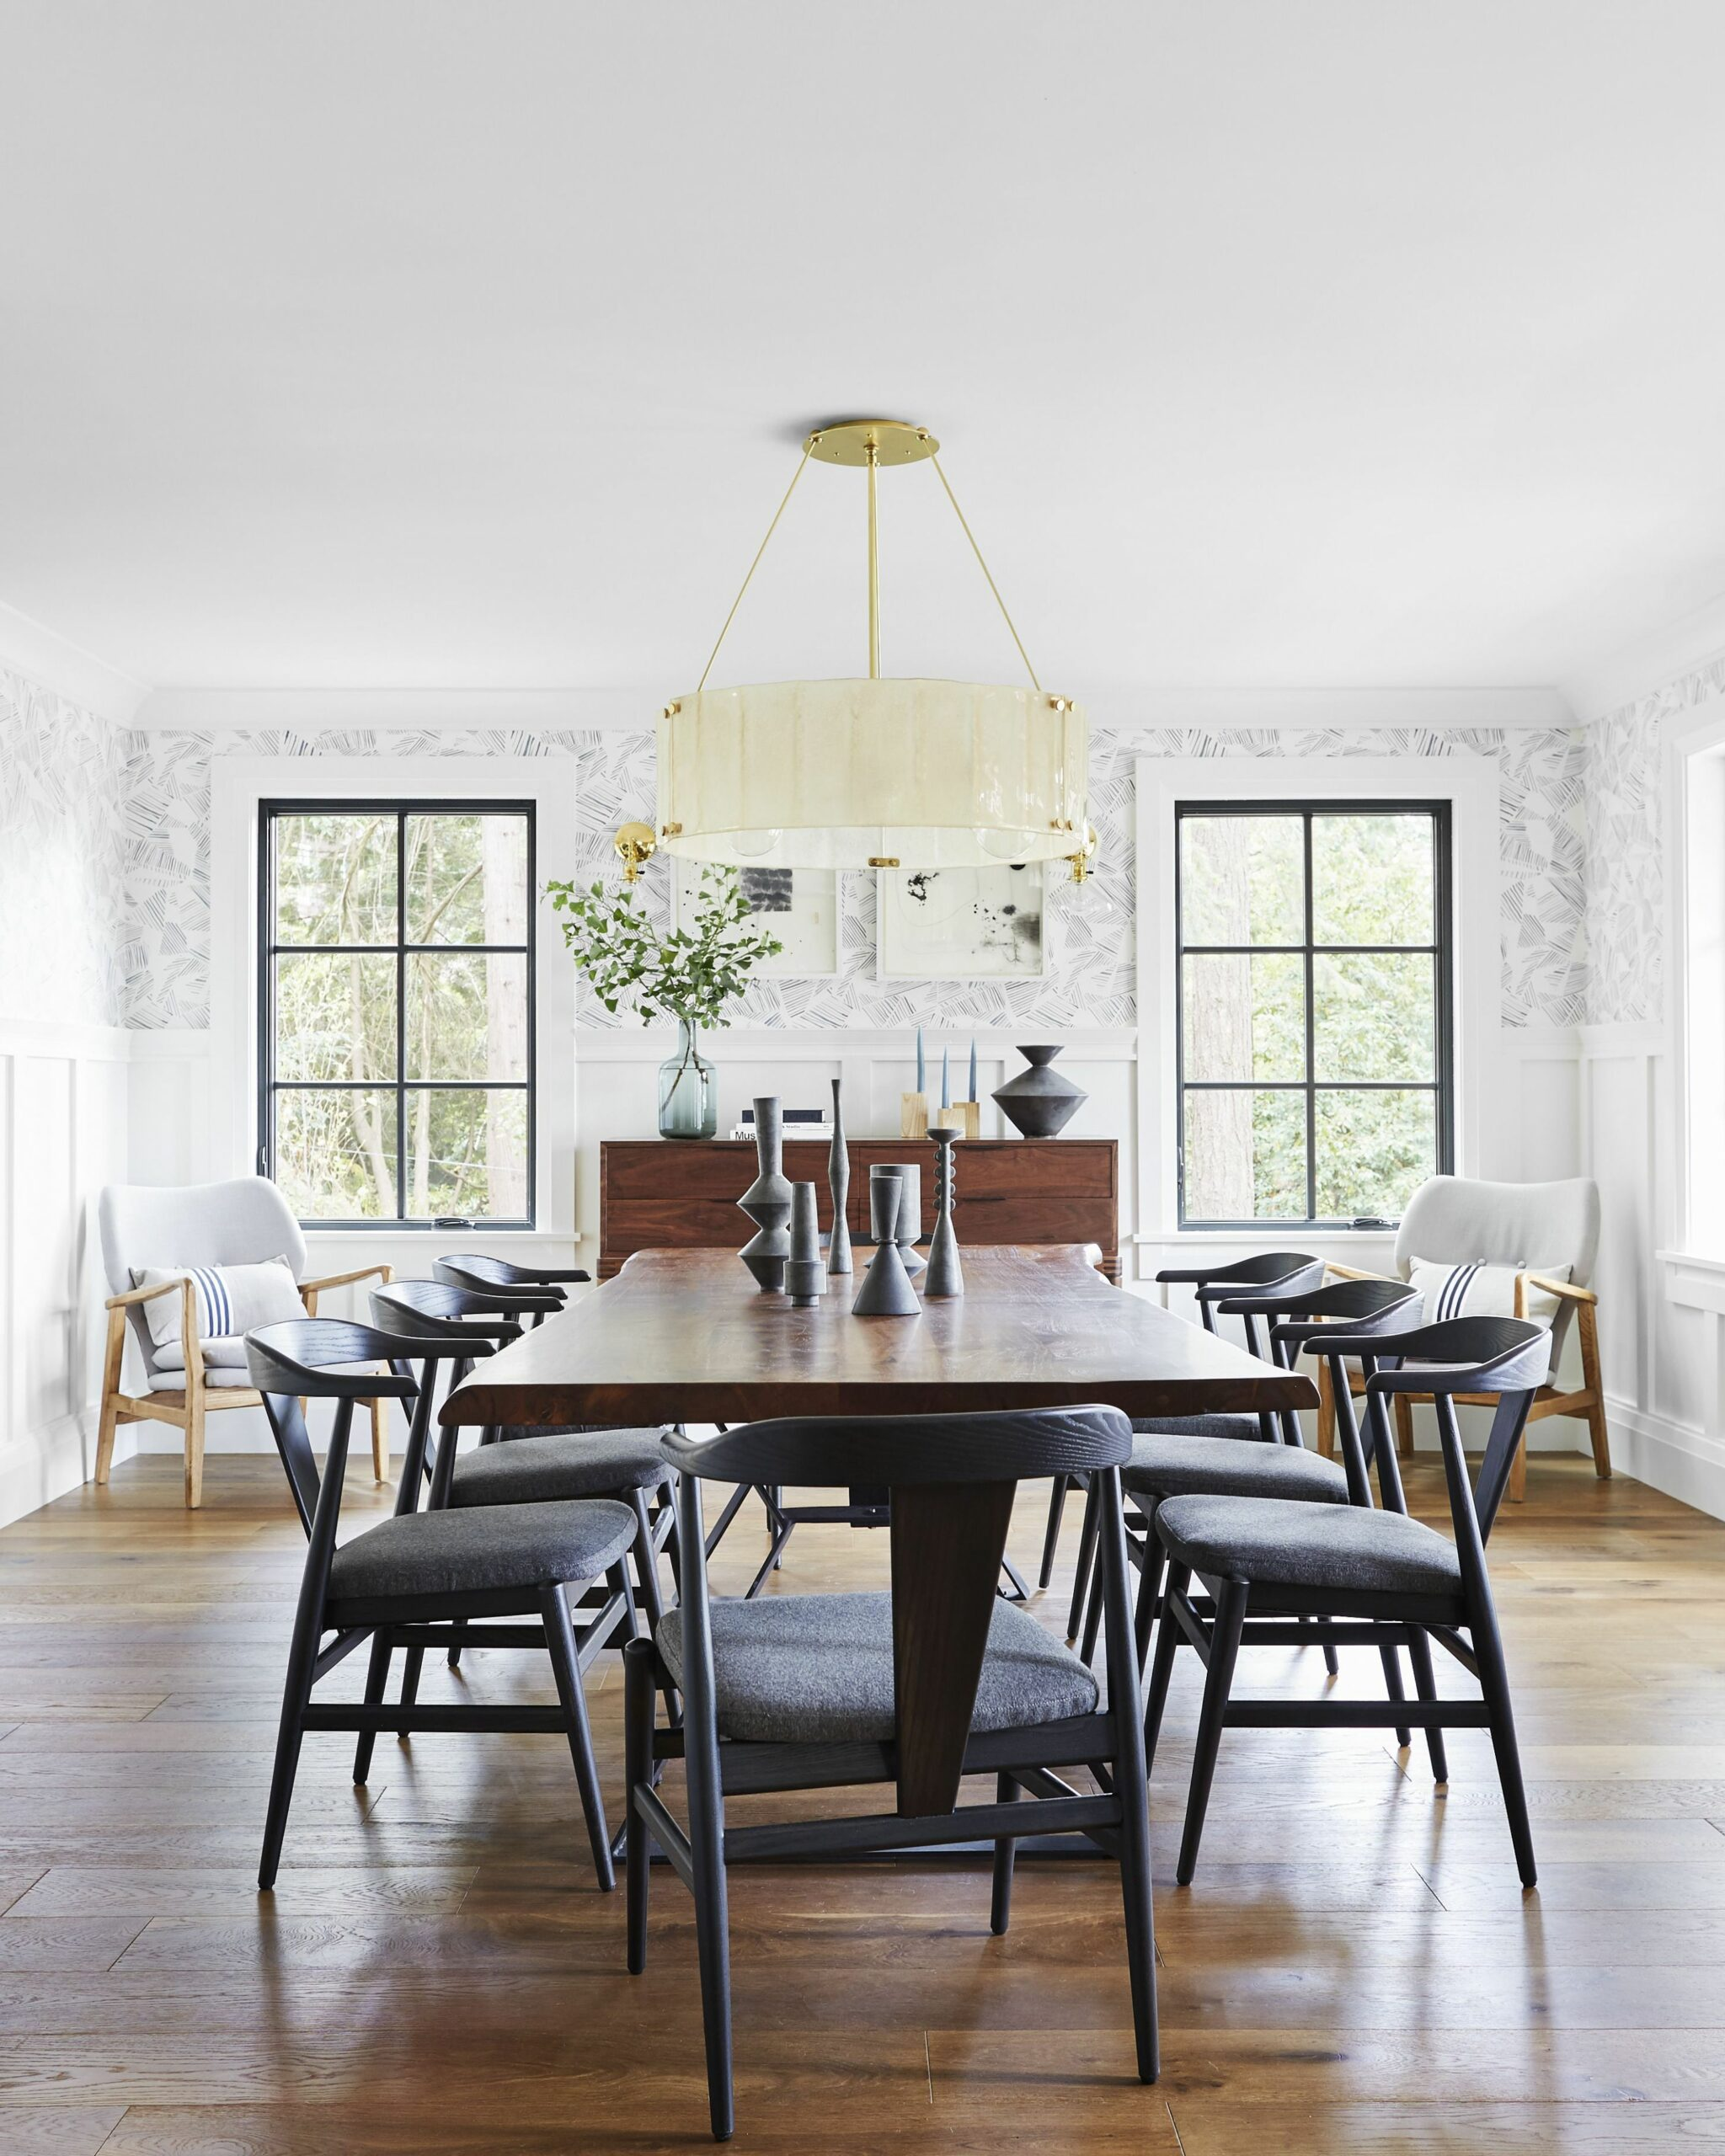 8 Dining Room Lighting Ideas to Brighten Up Your Space